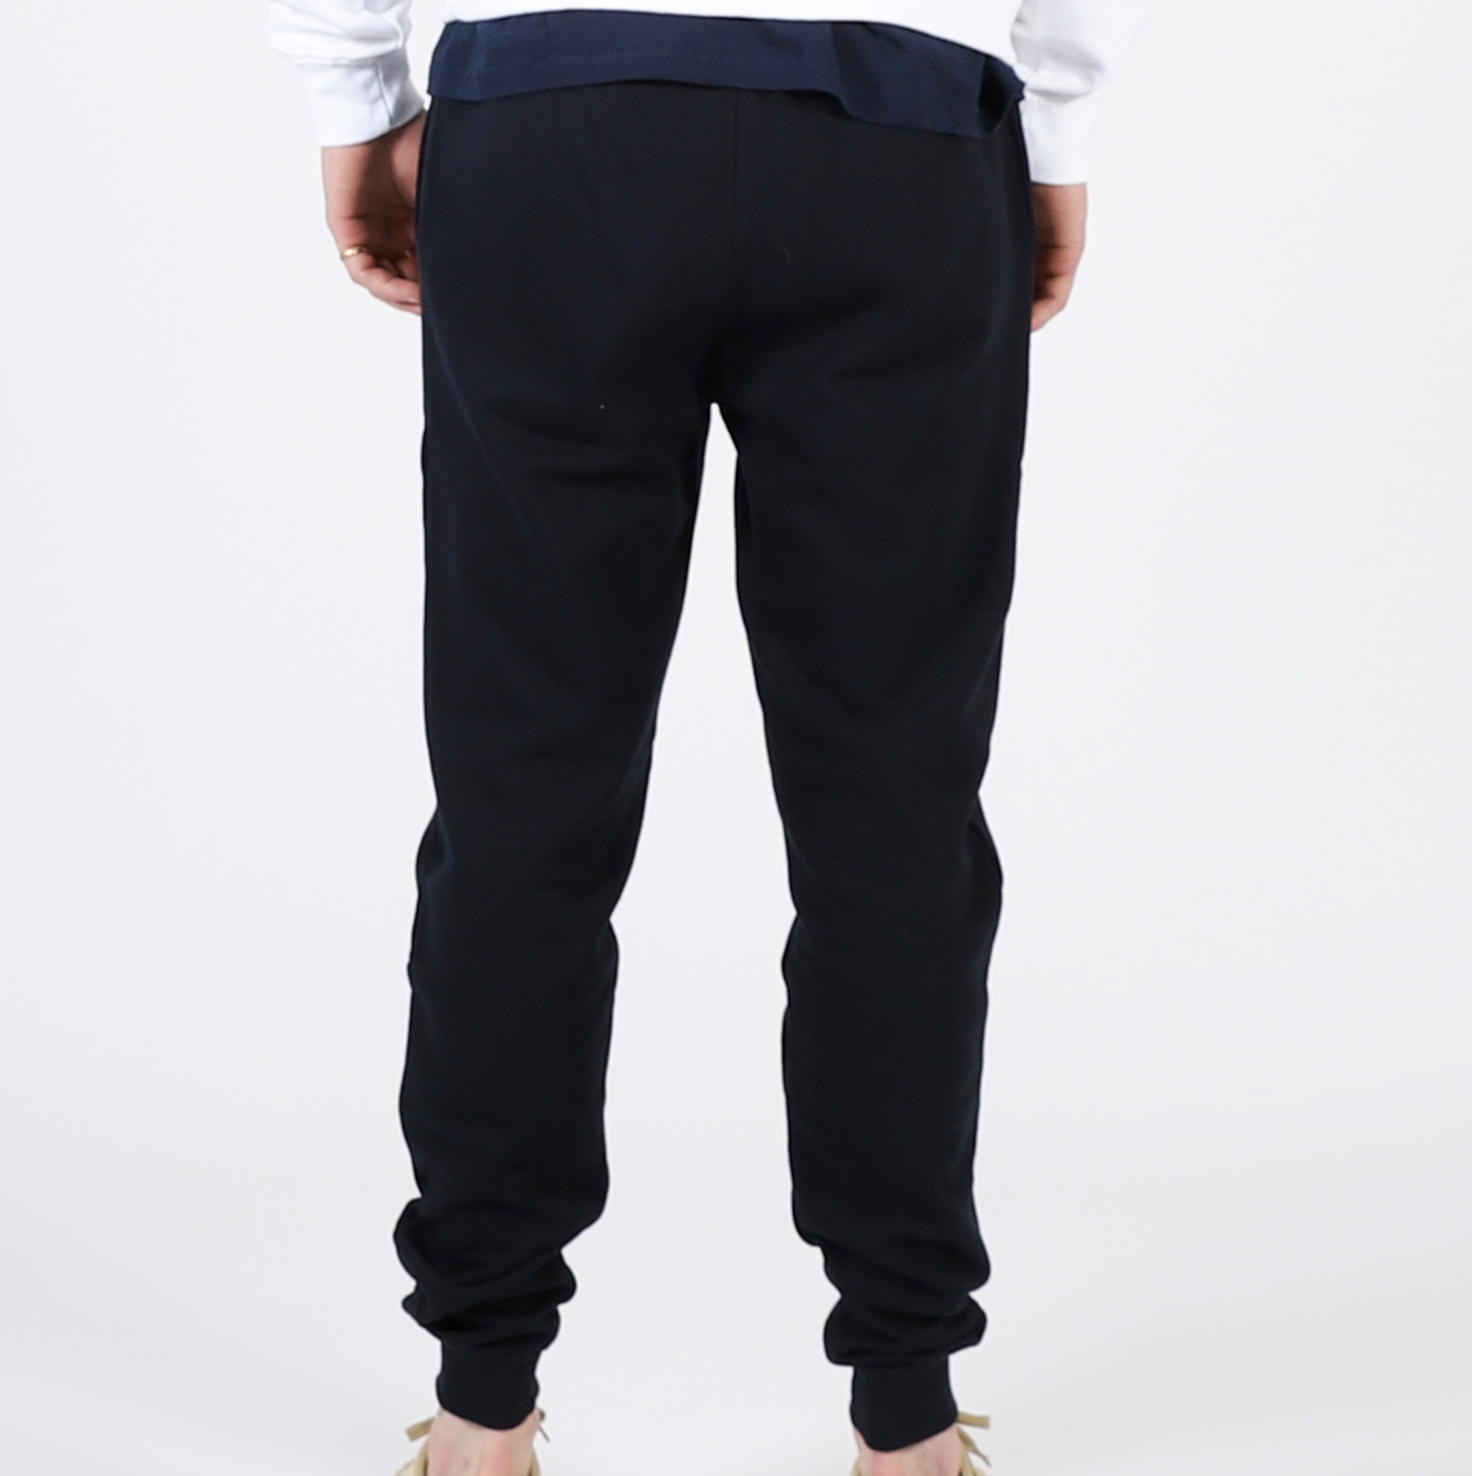 SWEAT PANT NAVY RAINBOW